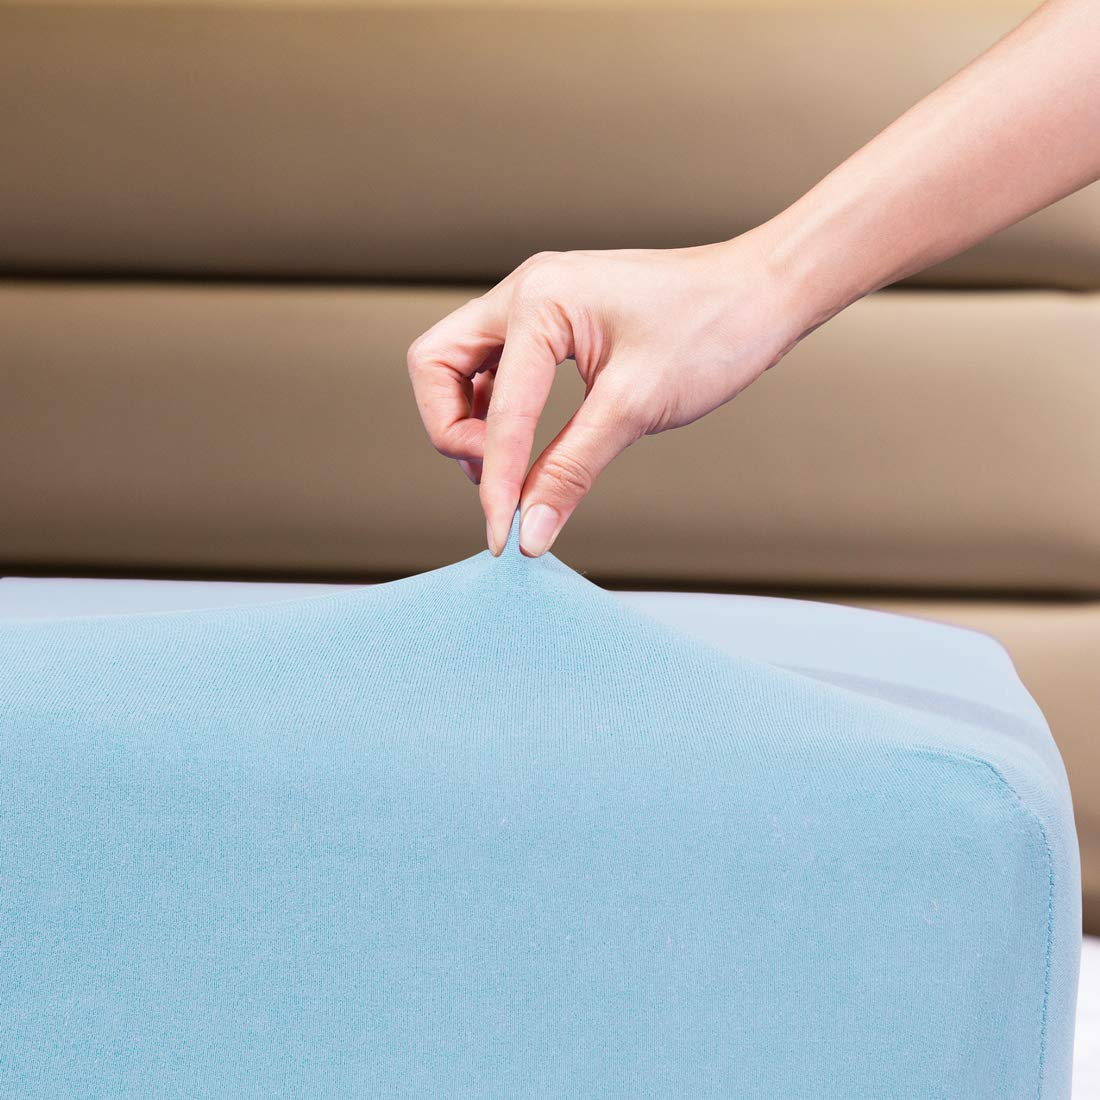 """COSMOPLUS Fitted Sheet Queen Fitted Sheet Only(No Flat Sheet or Pillow Shams),4 Way Stretch Micro-Knit,Snug Fit,Wrinkle Free,for Standard Mattress and Air Bed Mattress from 8"""" Up to 14"""",Baby Blue"""